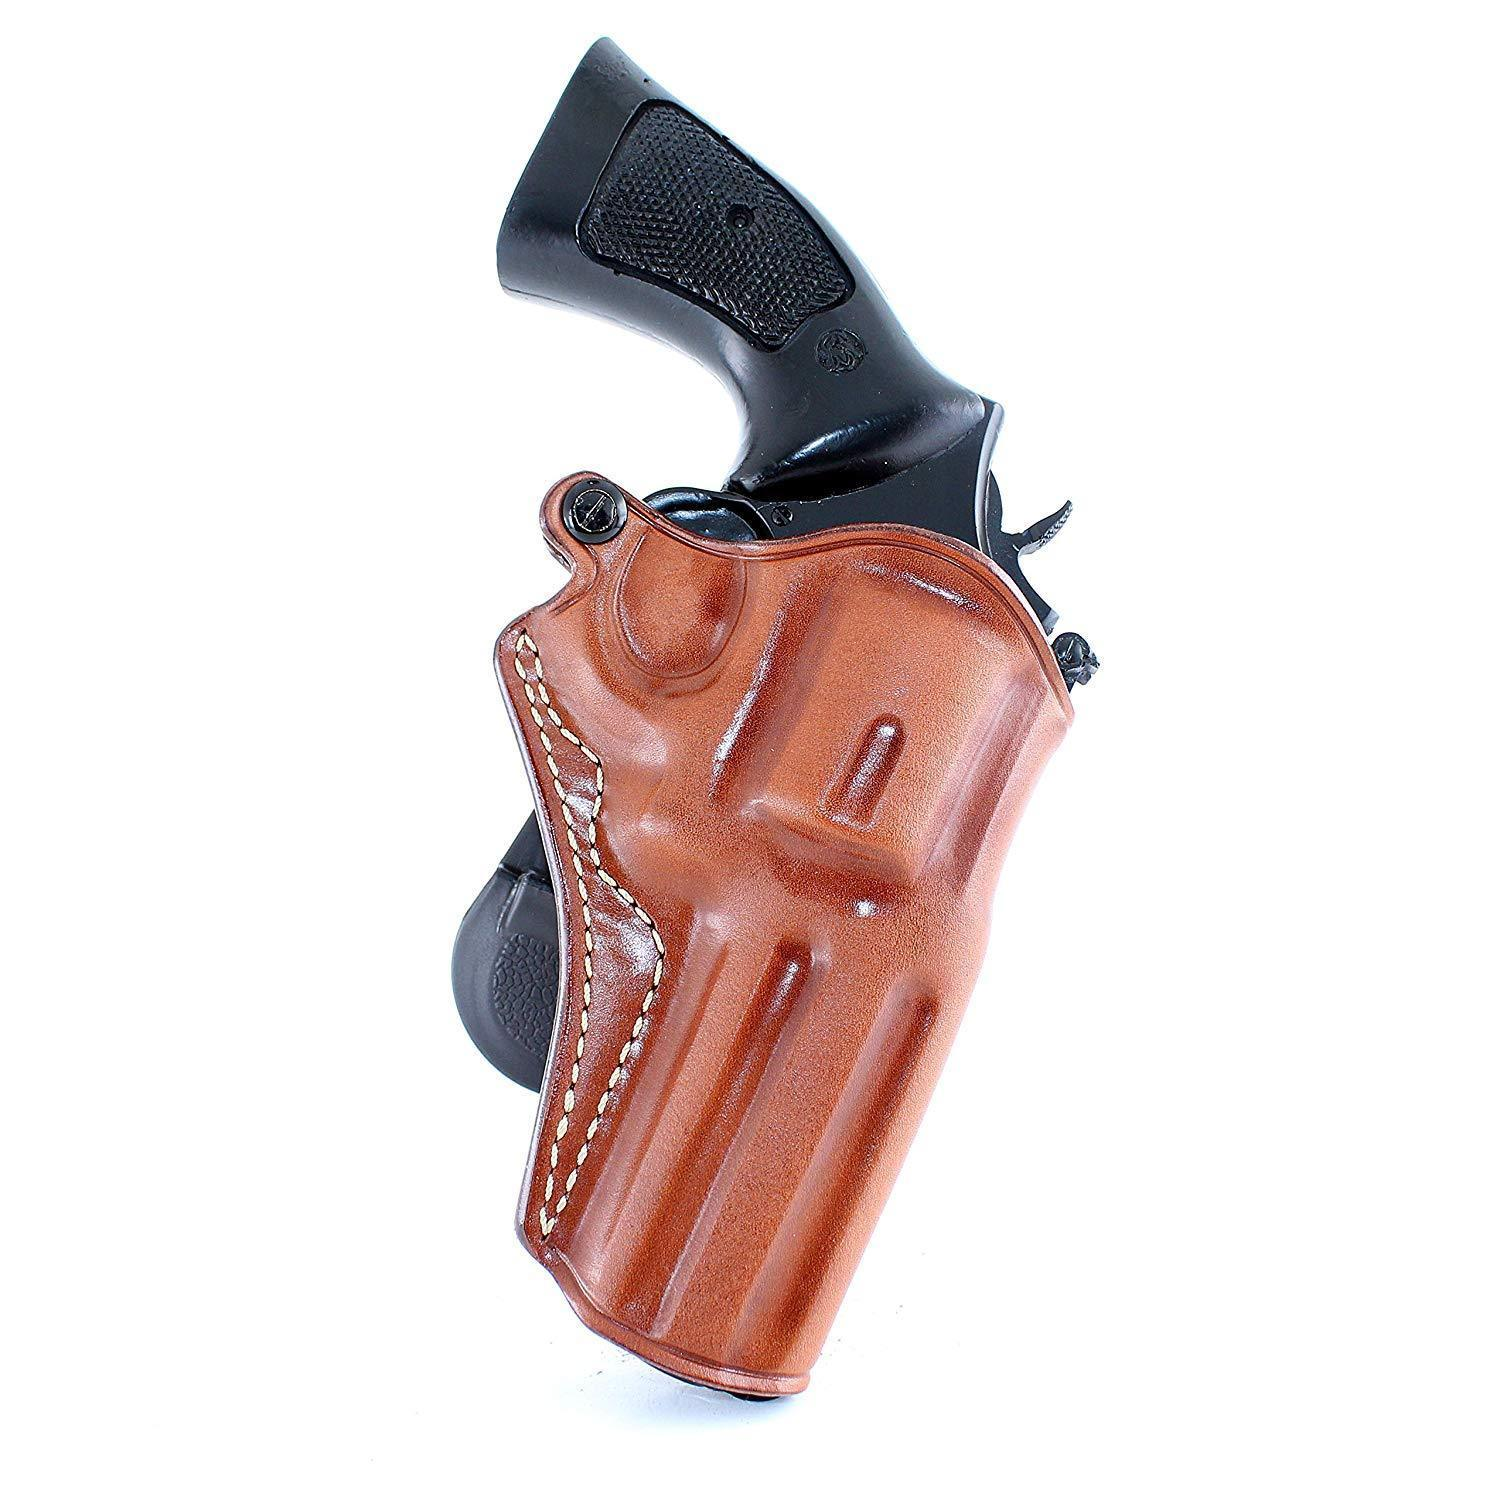 "Primary image for Leather Paddle Holster Fits Colt Pyhton 357 Magnum Revolver 4"" Barrel #1304#"